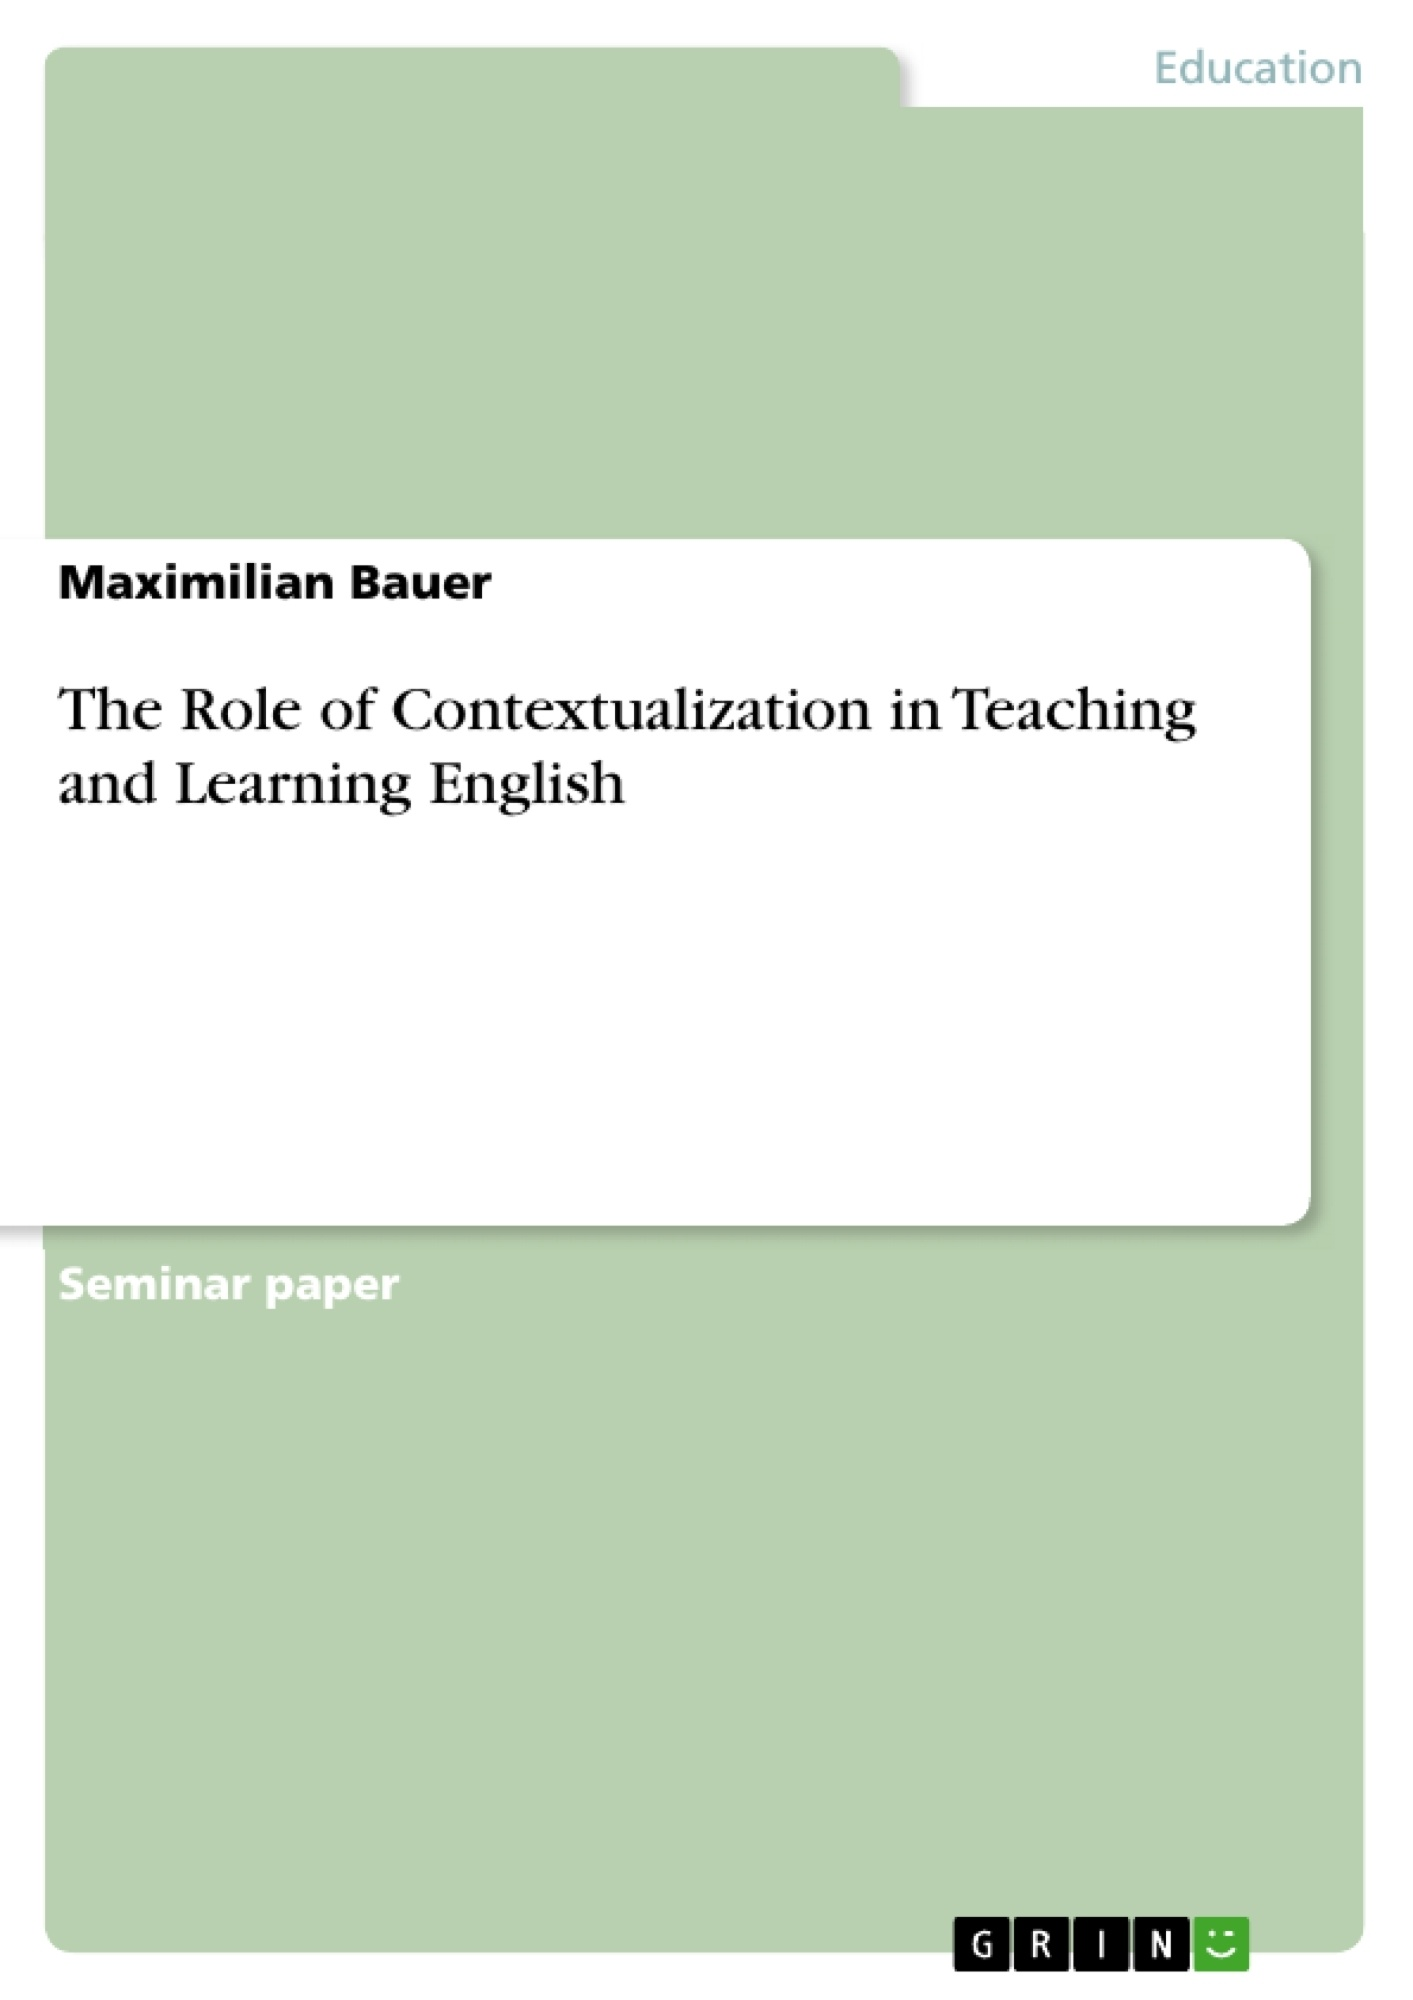 Title: The Role of Contextualization in Teaching and Learning English